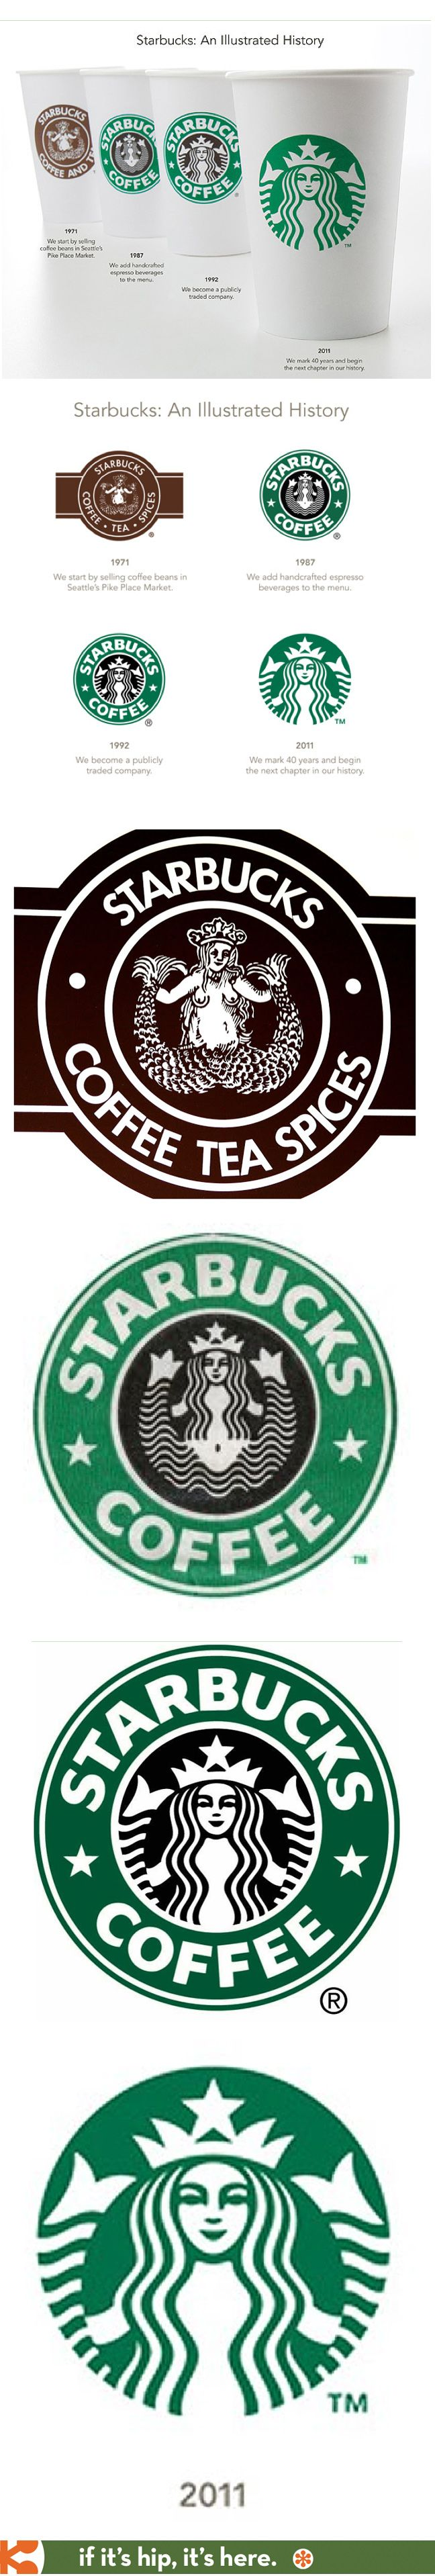 evolution of the starbucks logo small changes to update a logo as evolution of the starbucks logo small changes to update a logo as the business grows and